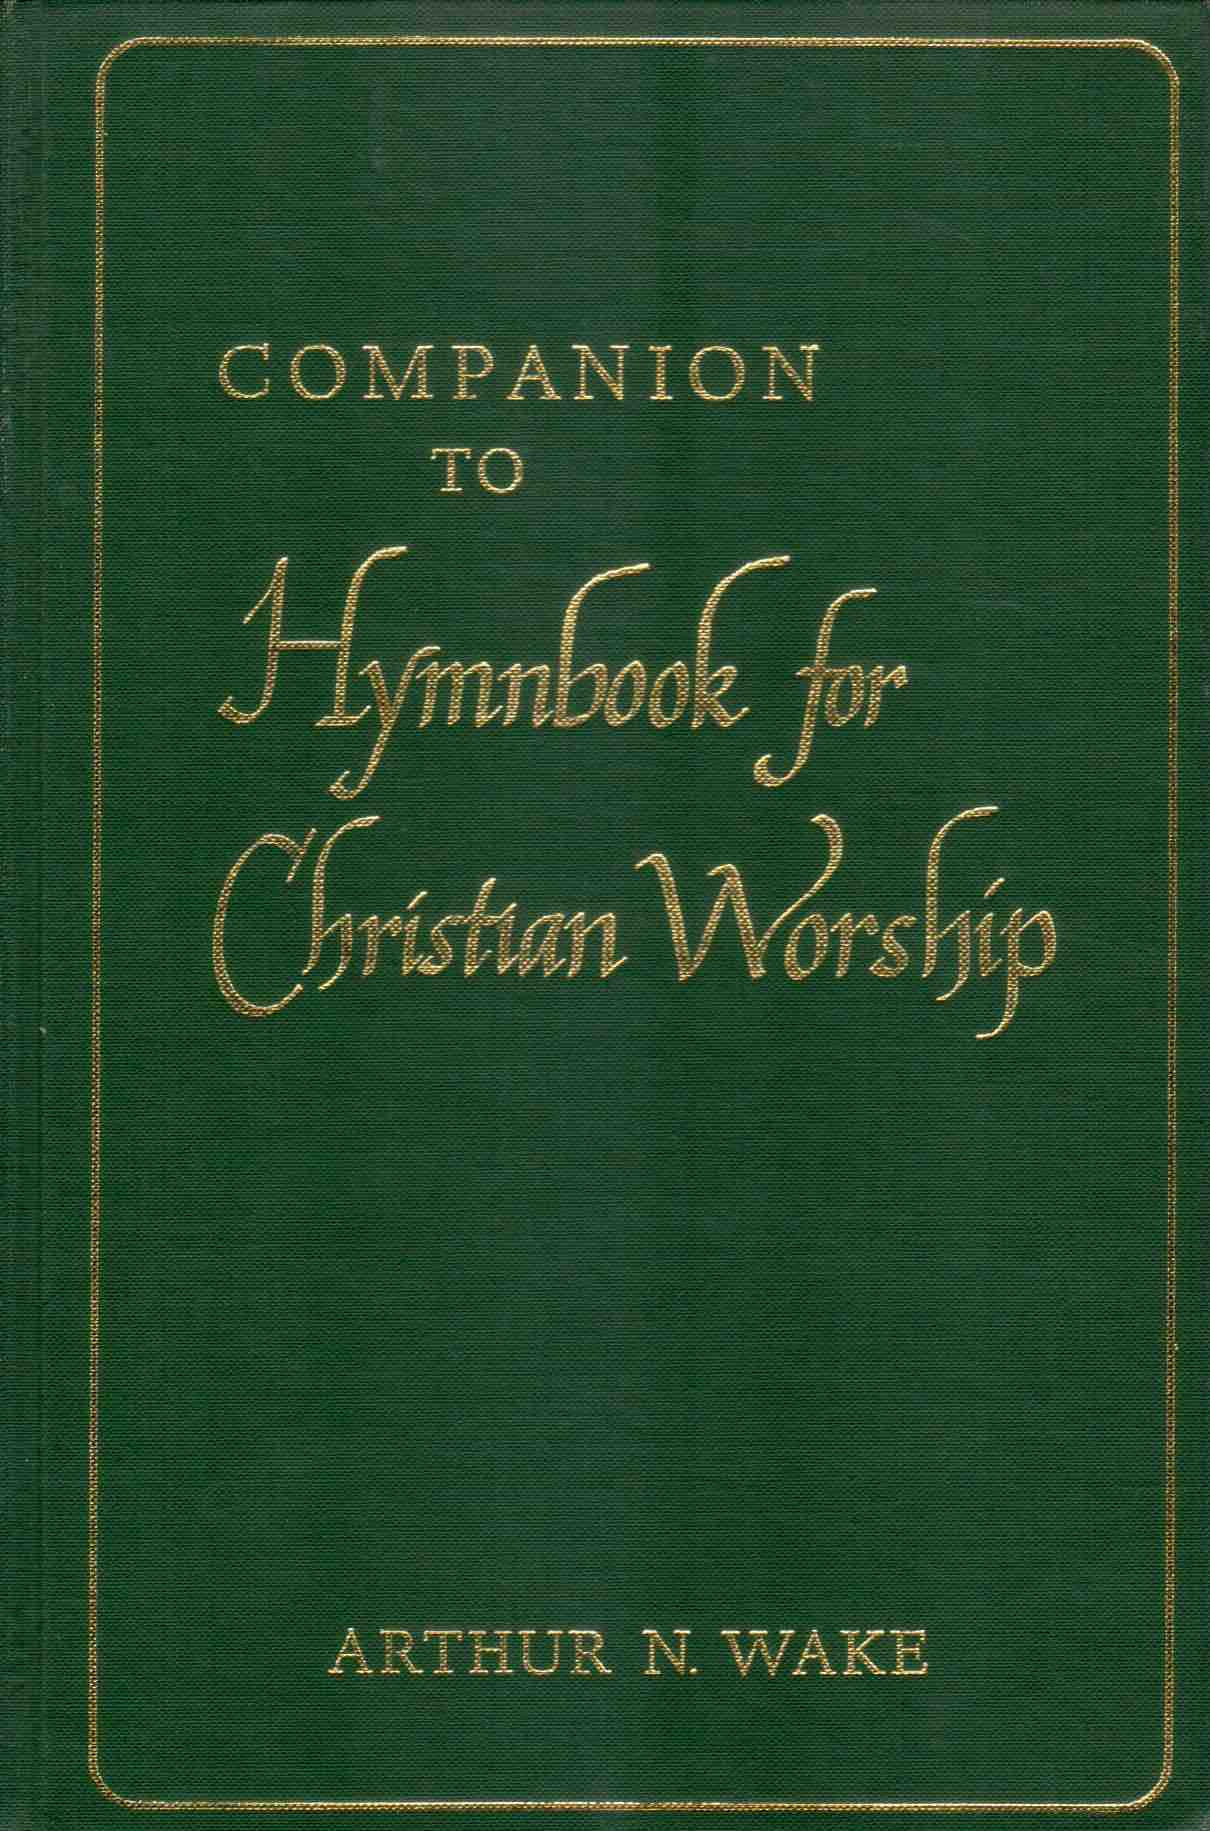 Cover of Companion to Hymnbook for Christian Worship